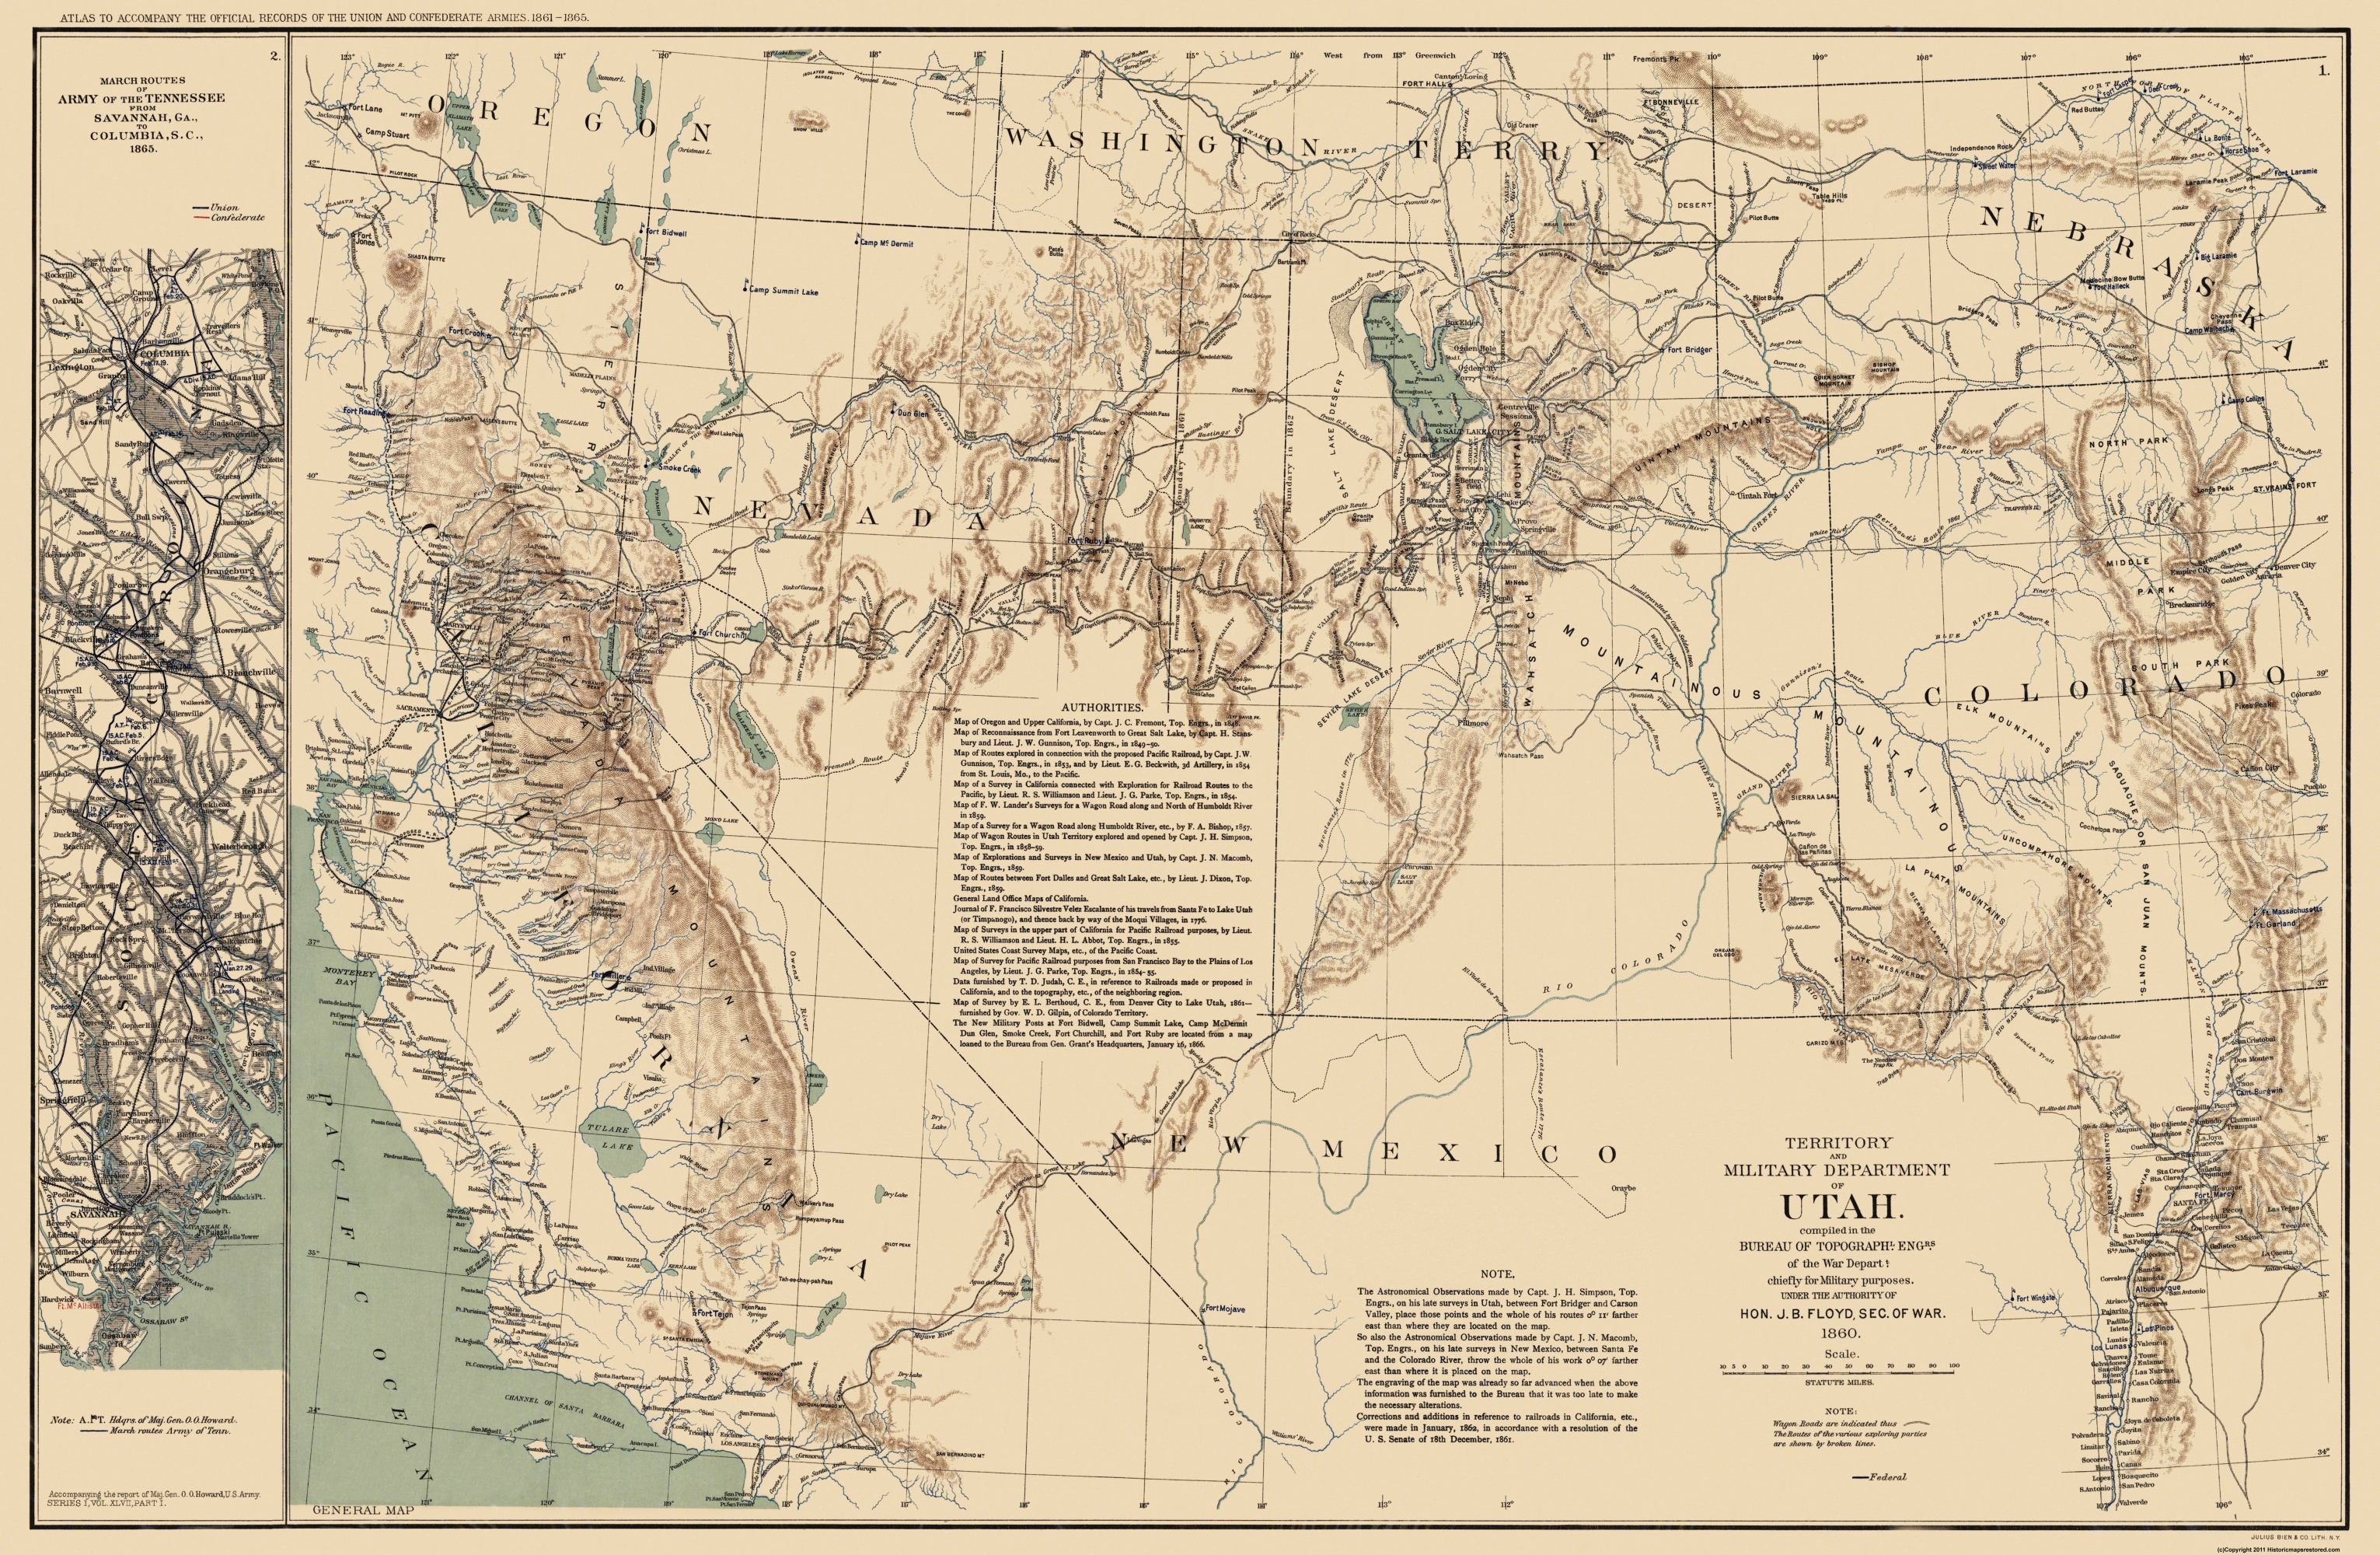 Old State Map Utah Territory US War Dept - Old savannags in us map